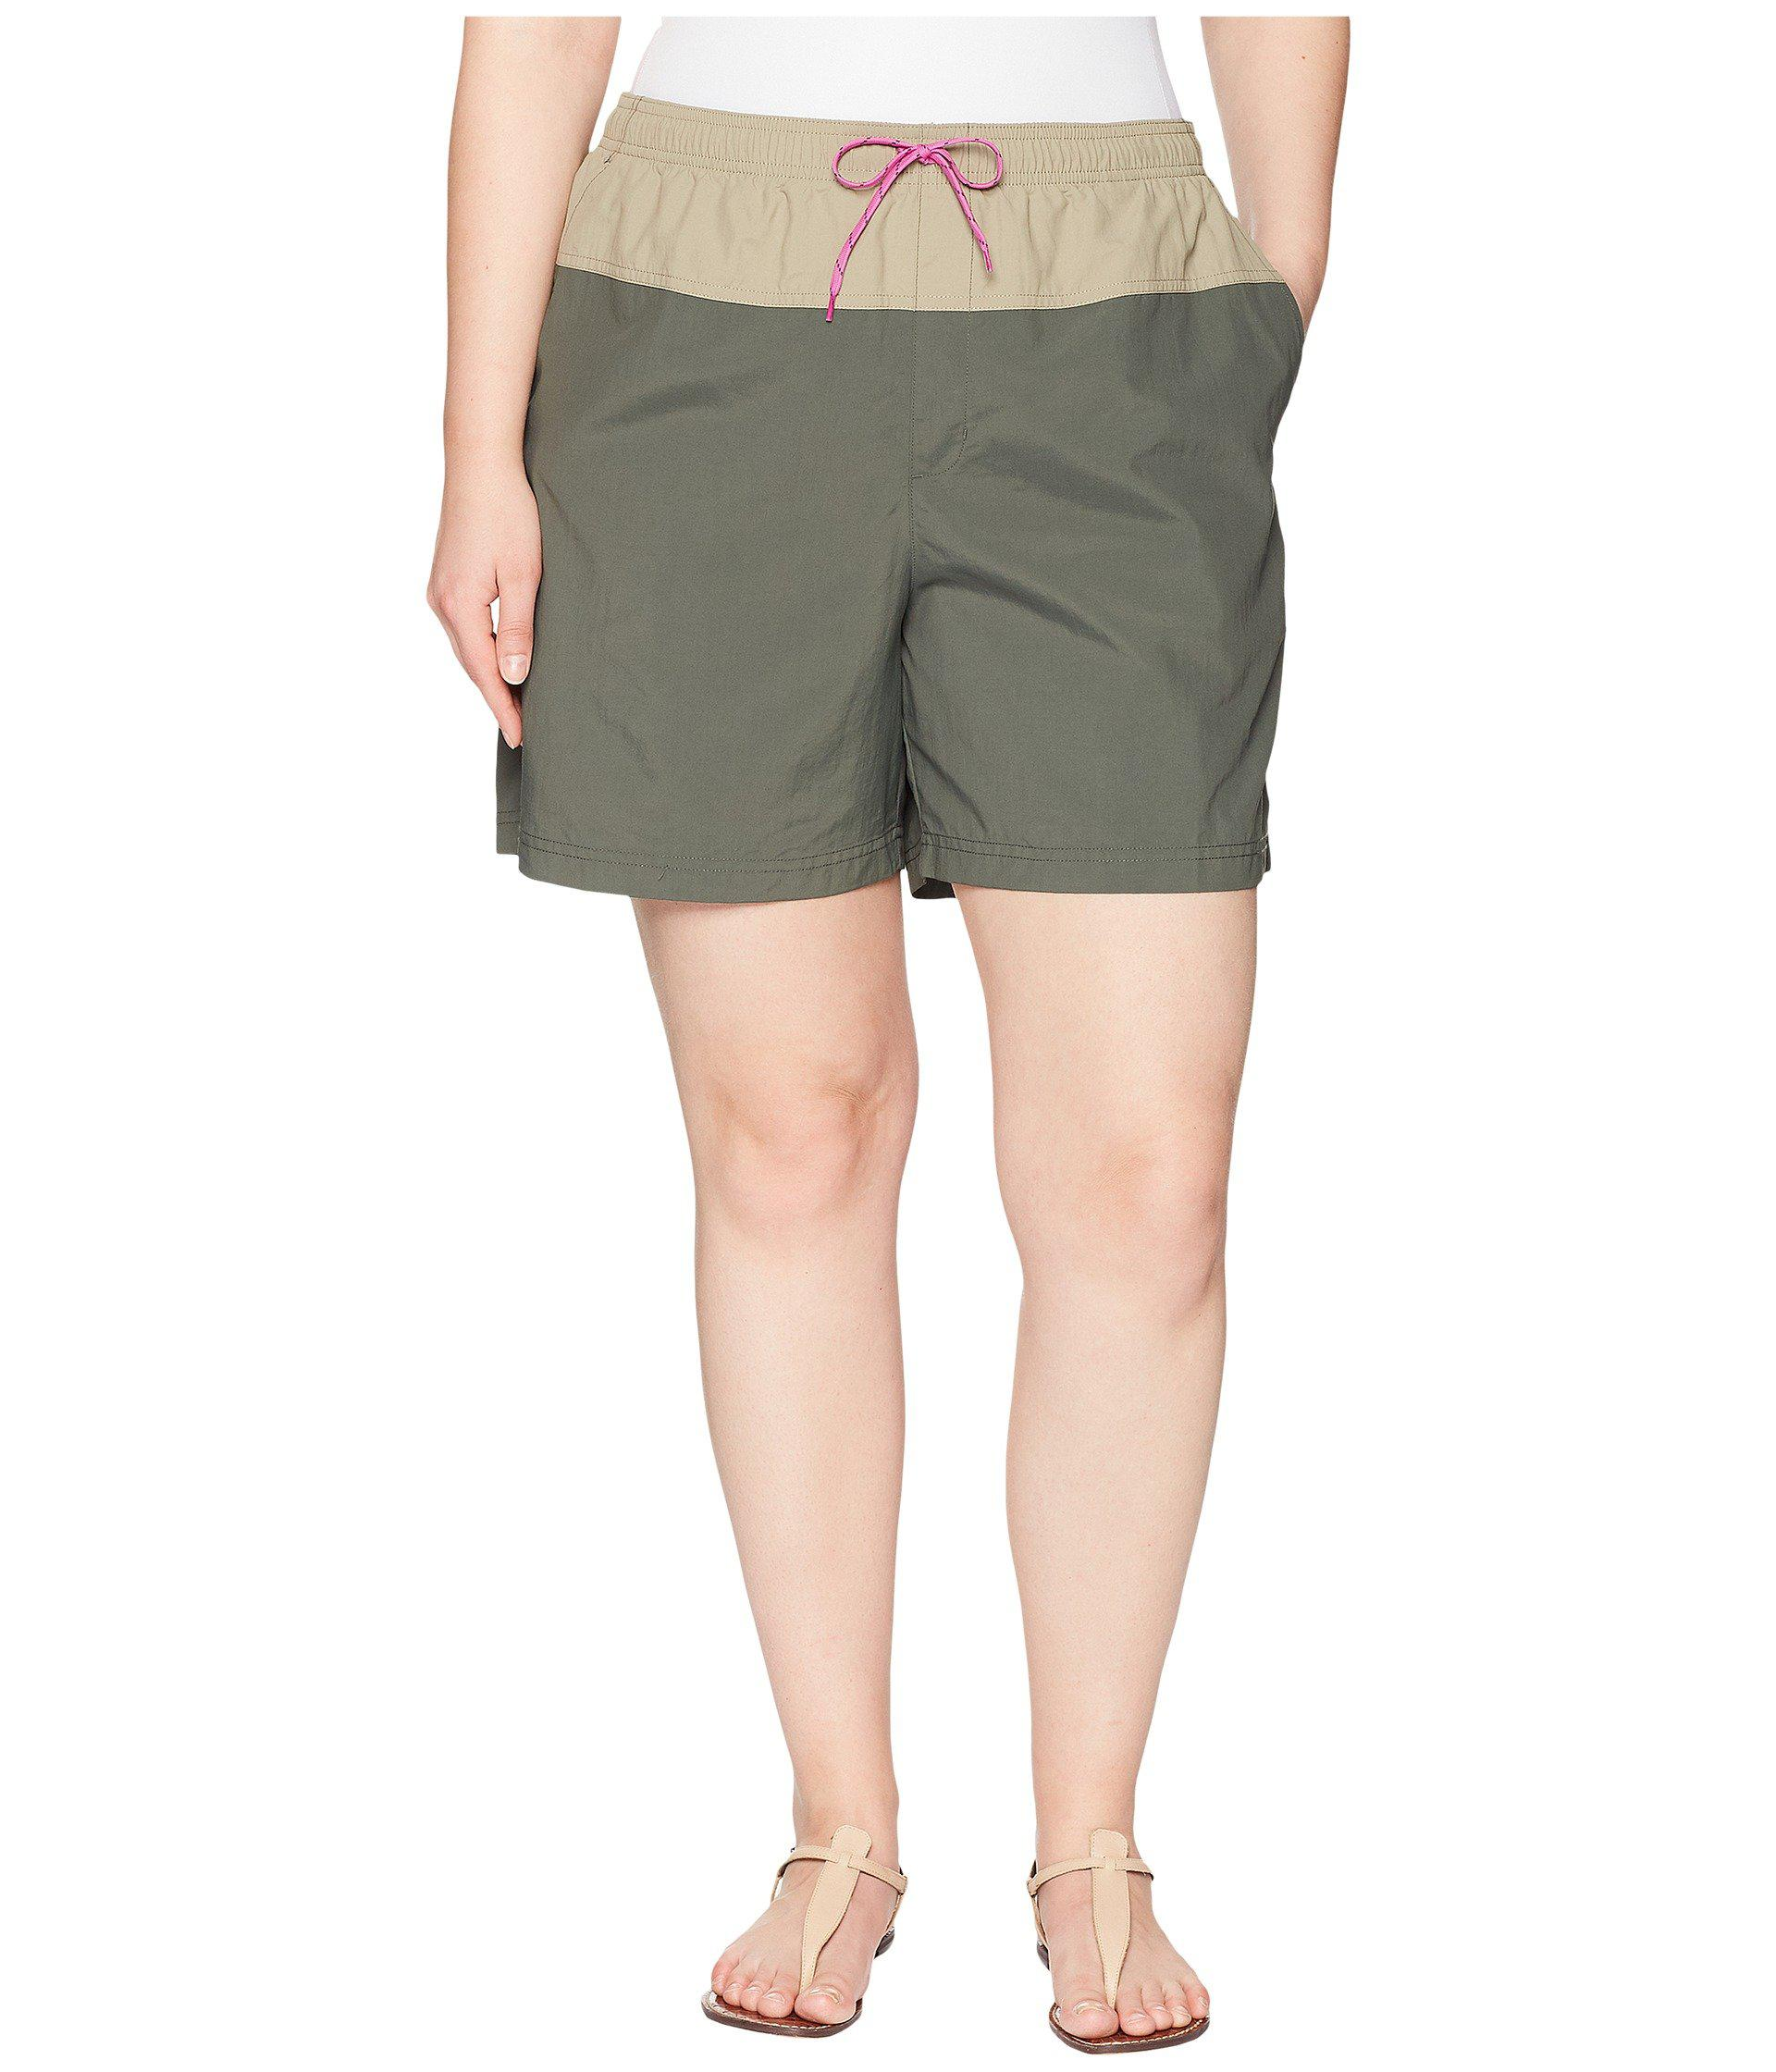 3371131ec2 Lyst - Columbia Plus Size Sandy Rivertm Color Blocked Shorts in ...